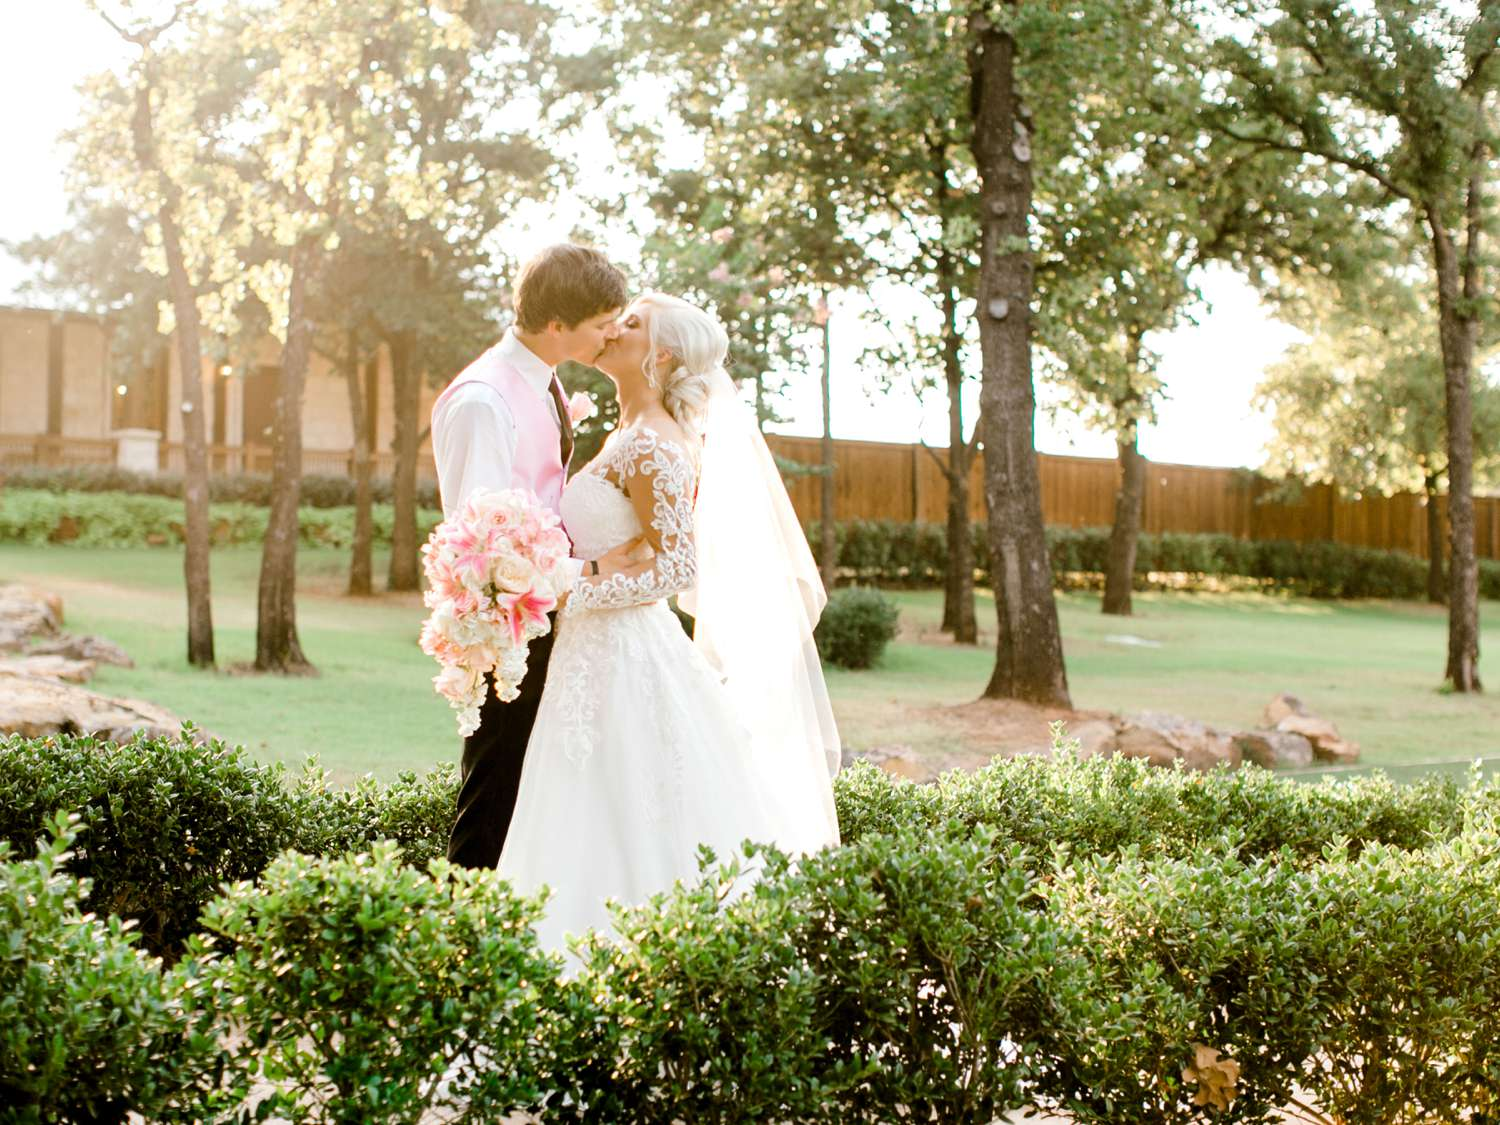 JESSICA+LYLE+NEEL+THE_SPRINGS_EVENTS_WEDDING_OKLAHOMA_ALLEEJ_PHOTOGRAPHER_0089.jpg